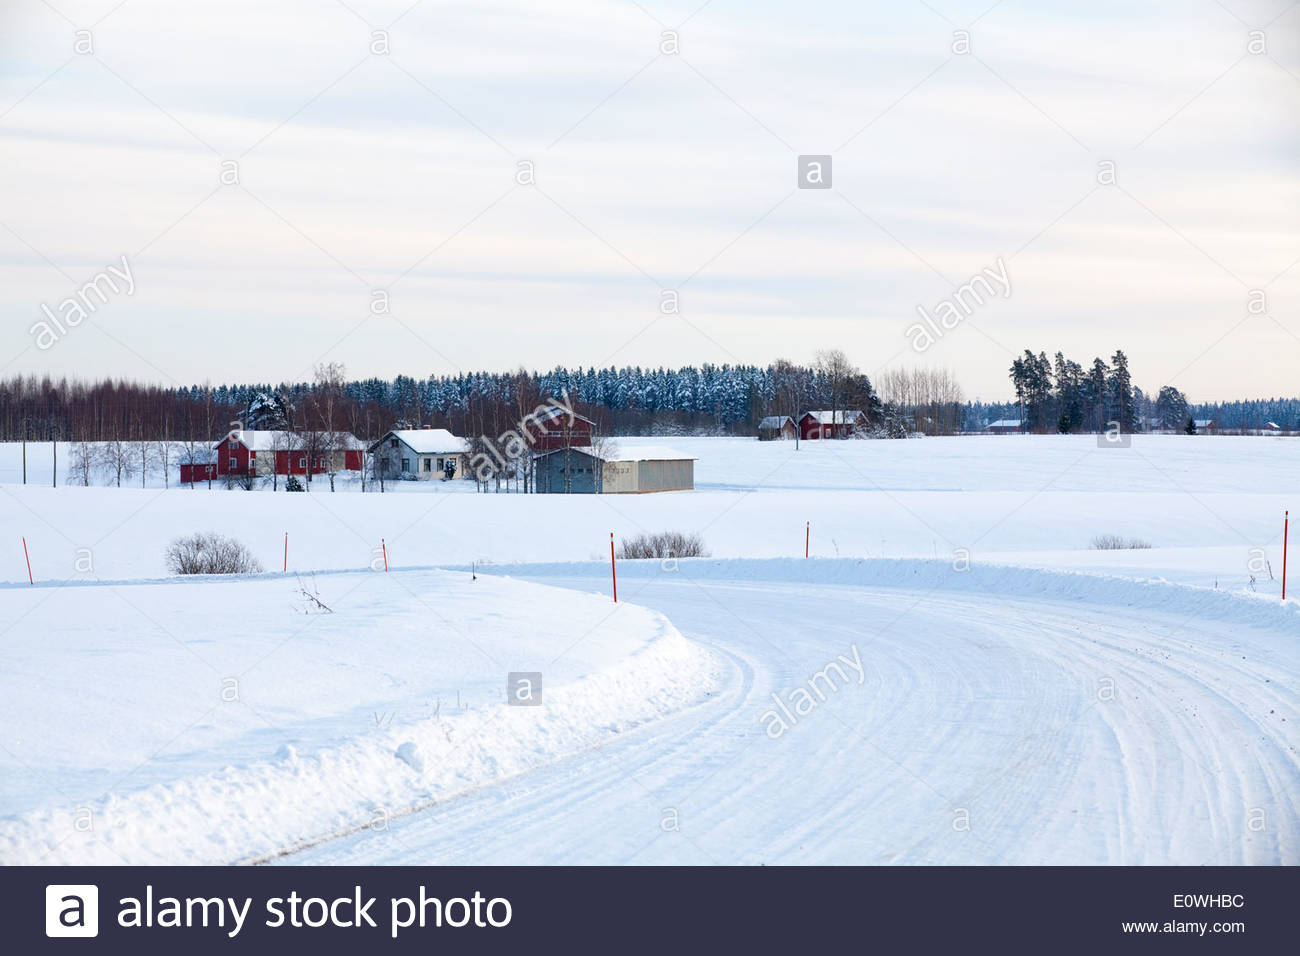 A group of houses in the countryside of Finland - Stock Image